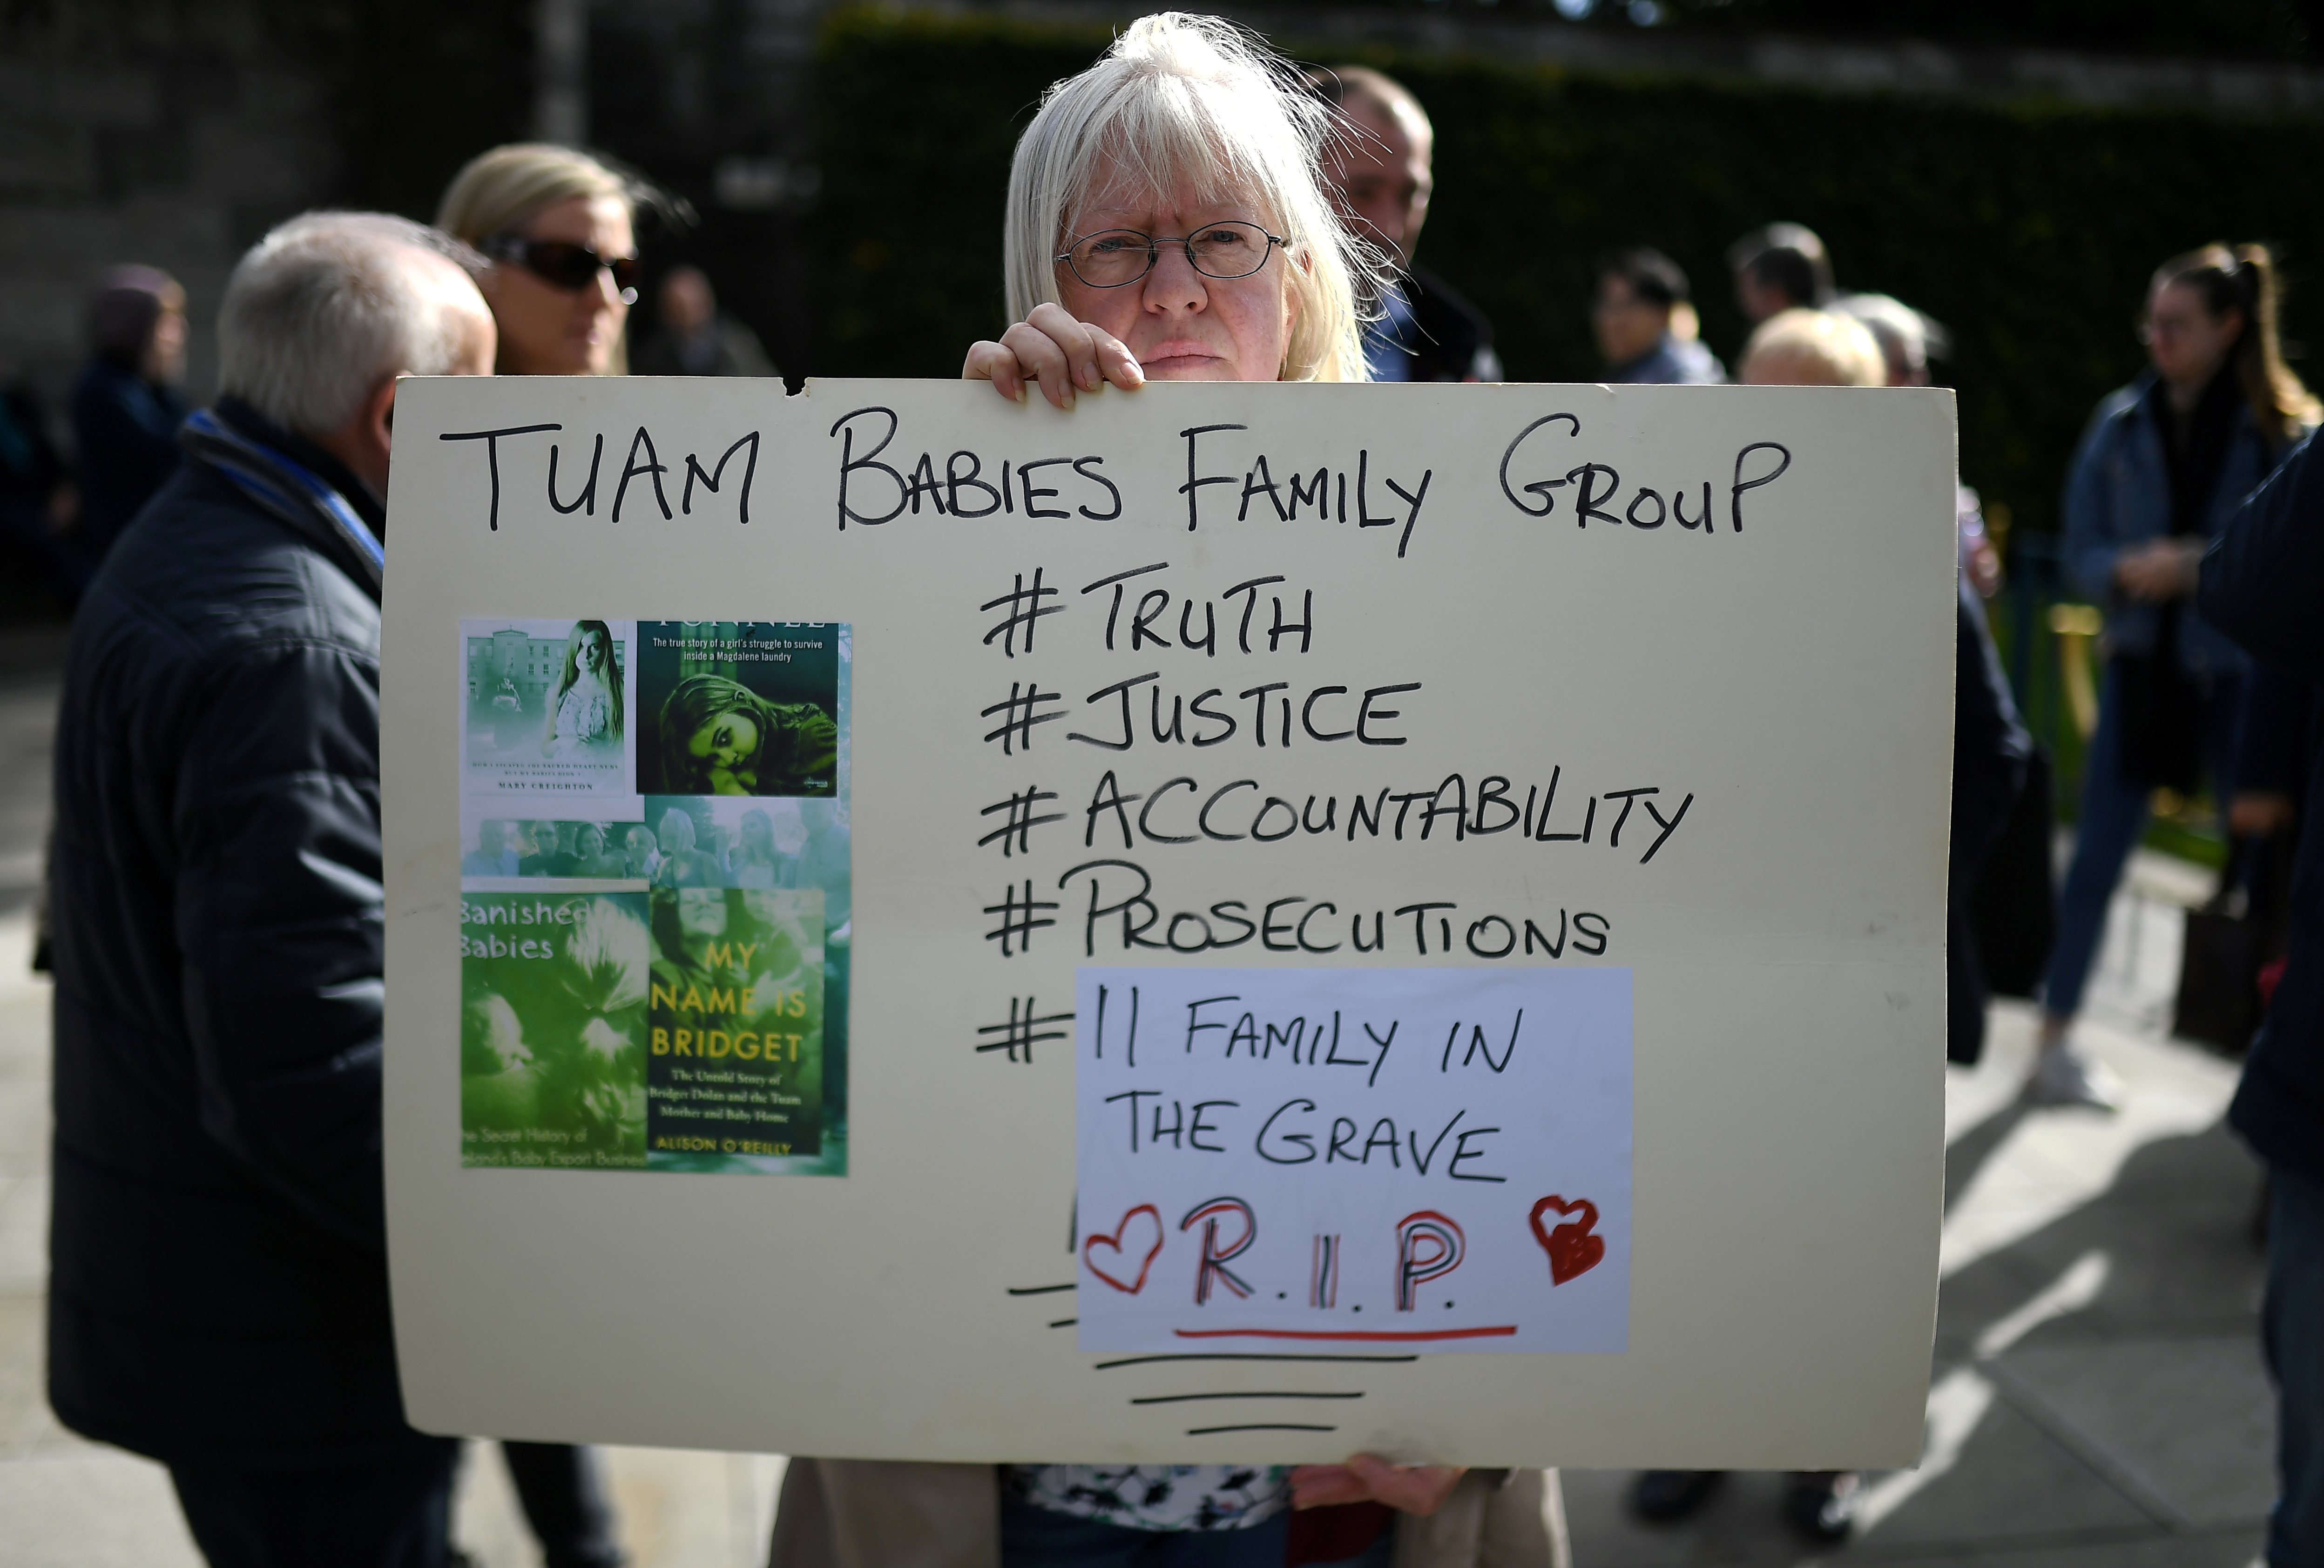 A woman holds a poster at a funeral procession in remembrance of the bodies of the infants discovered in a septic tank, in 2014, at the Tuam Mother and Baby Home, in Dublin, Ireland October 6, 2018. REUTERS/Clodagh Kilcoyne/File Photo